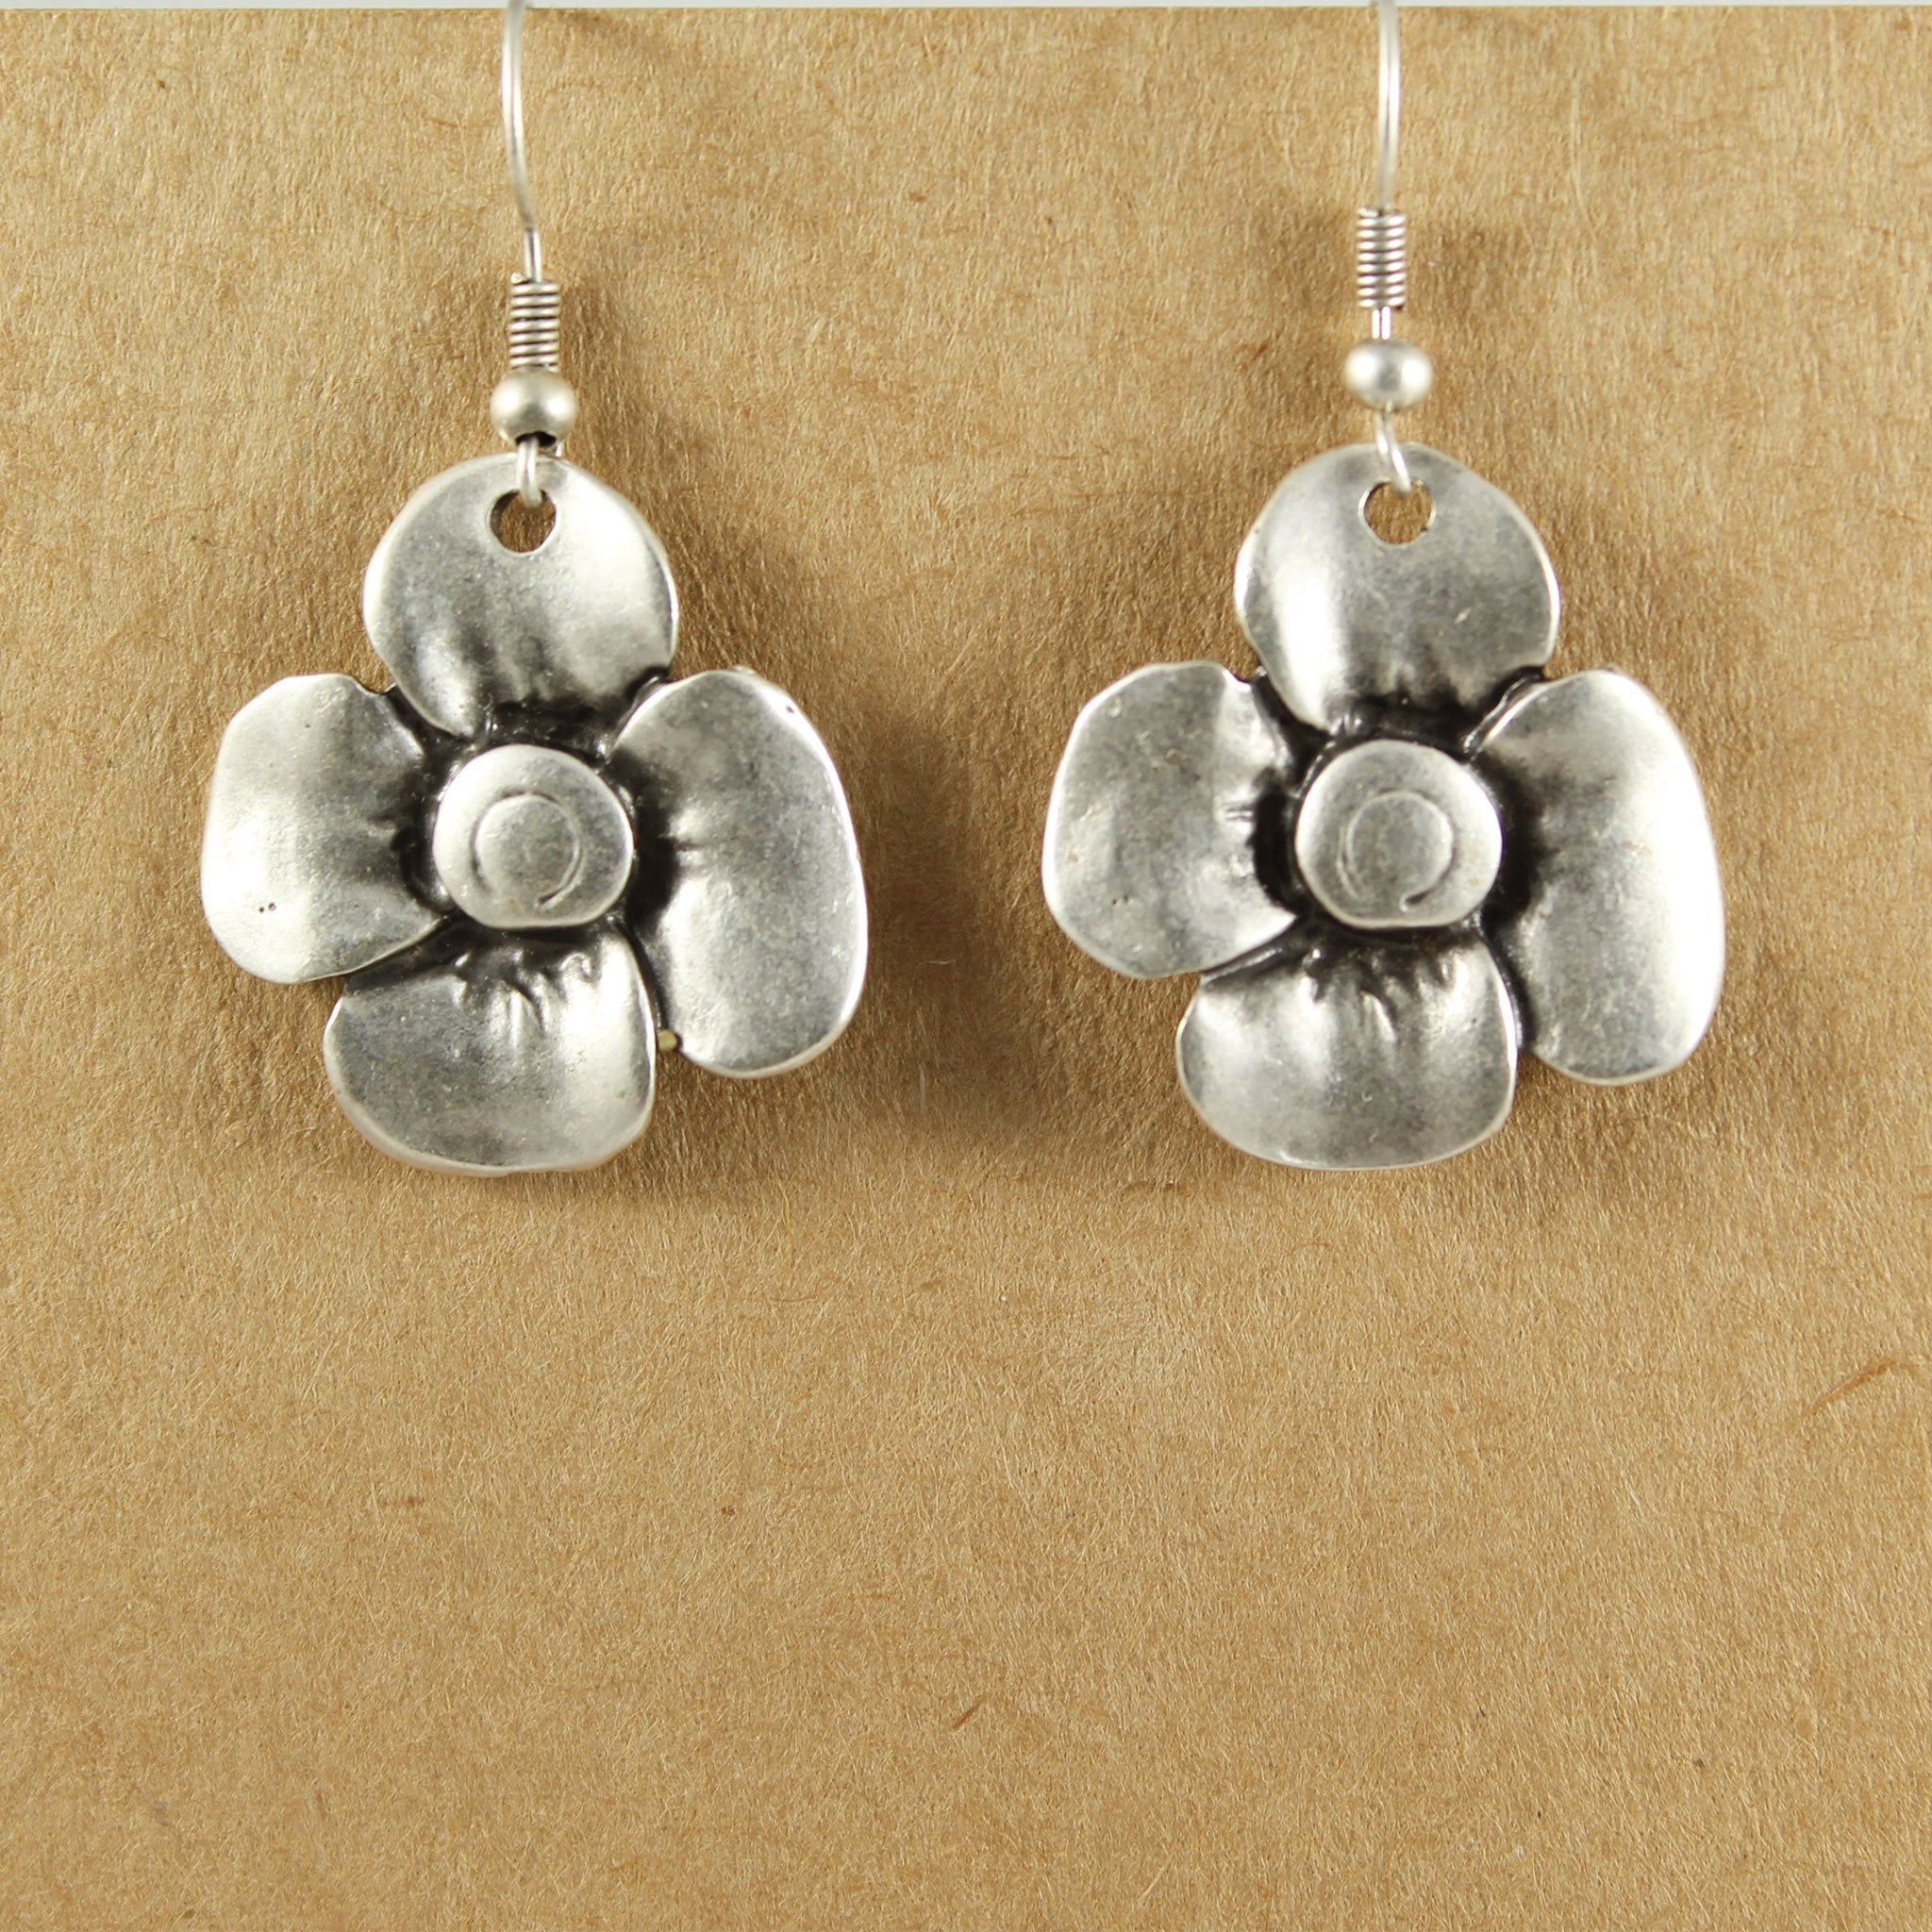 Flower earrings | Earrings - The Naughty Shrew